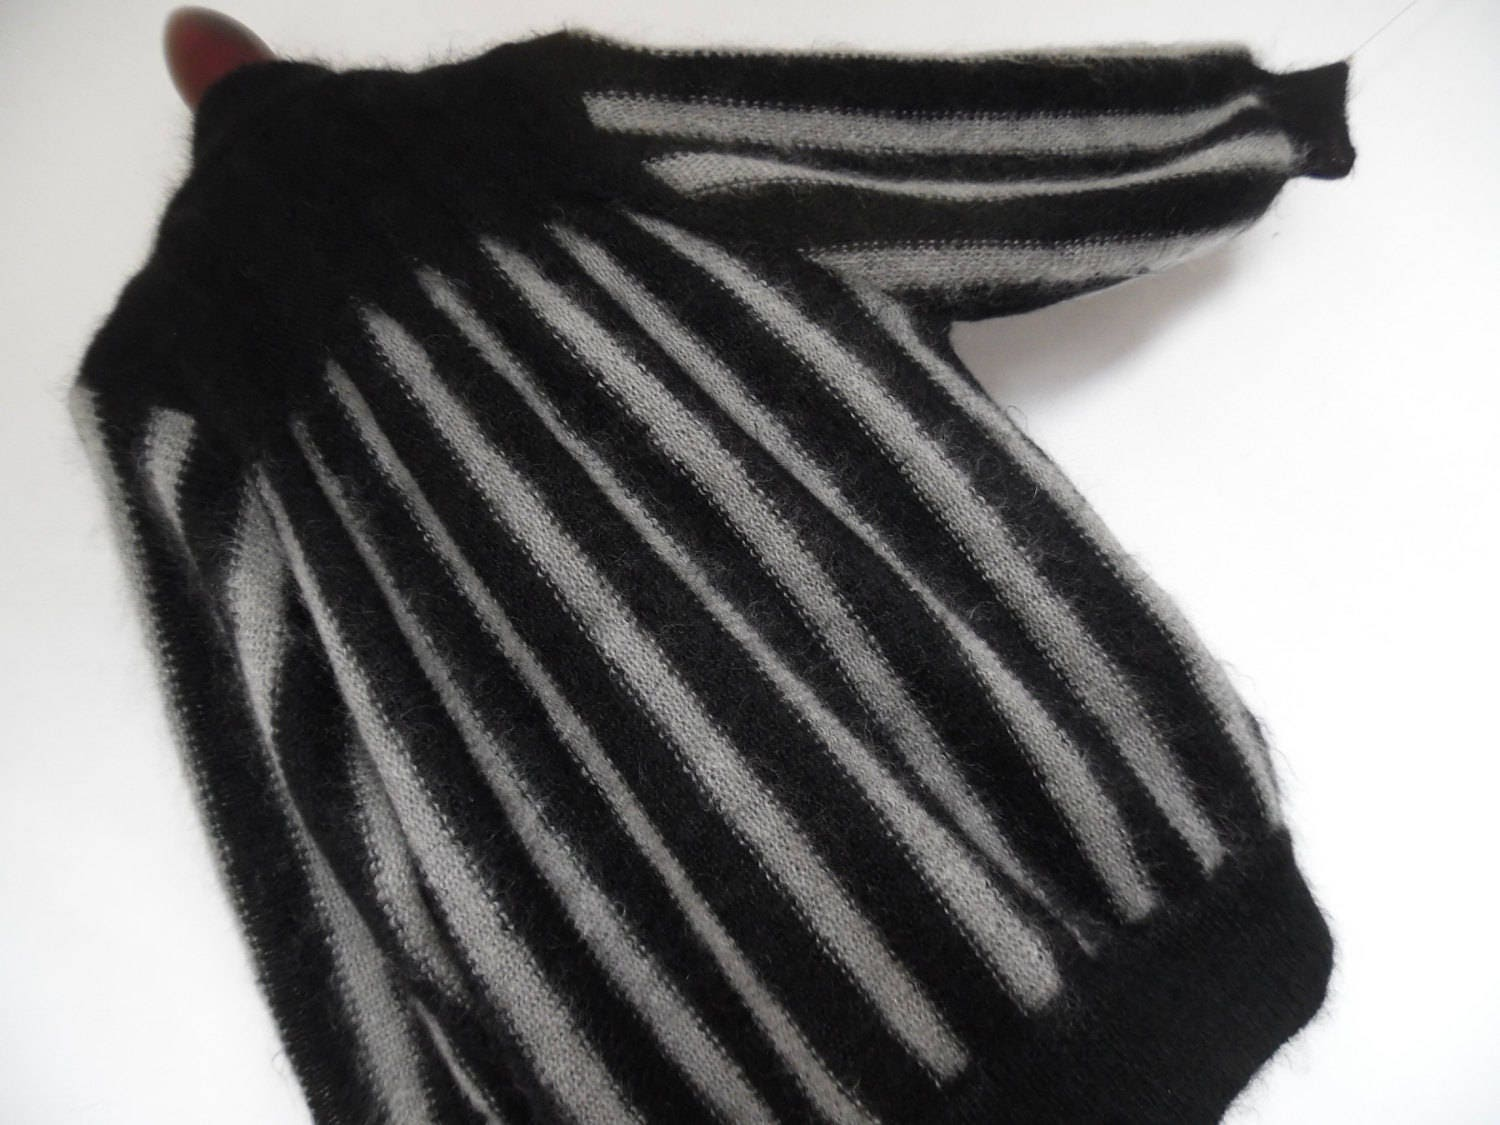 Striped cocoon art deco 20s style mohair mix striking black - Deco style cocooning ...